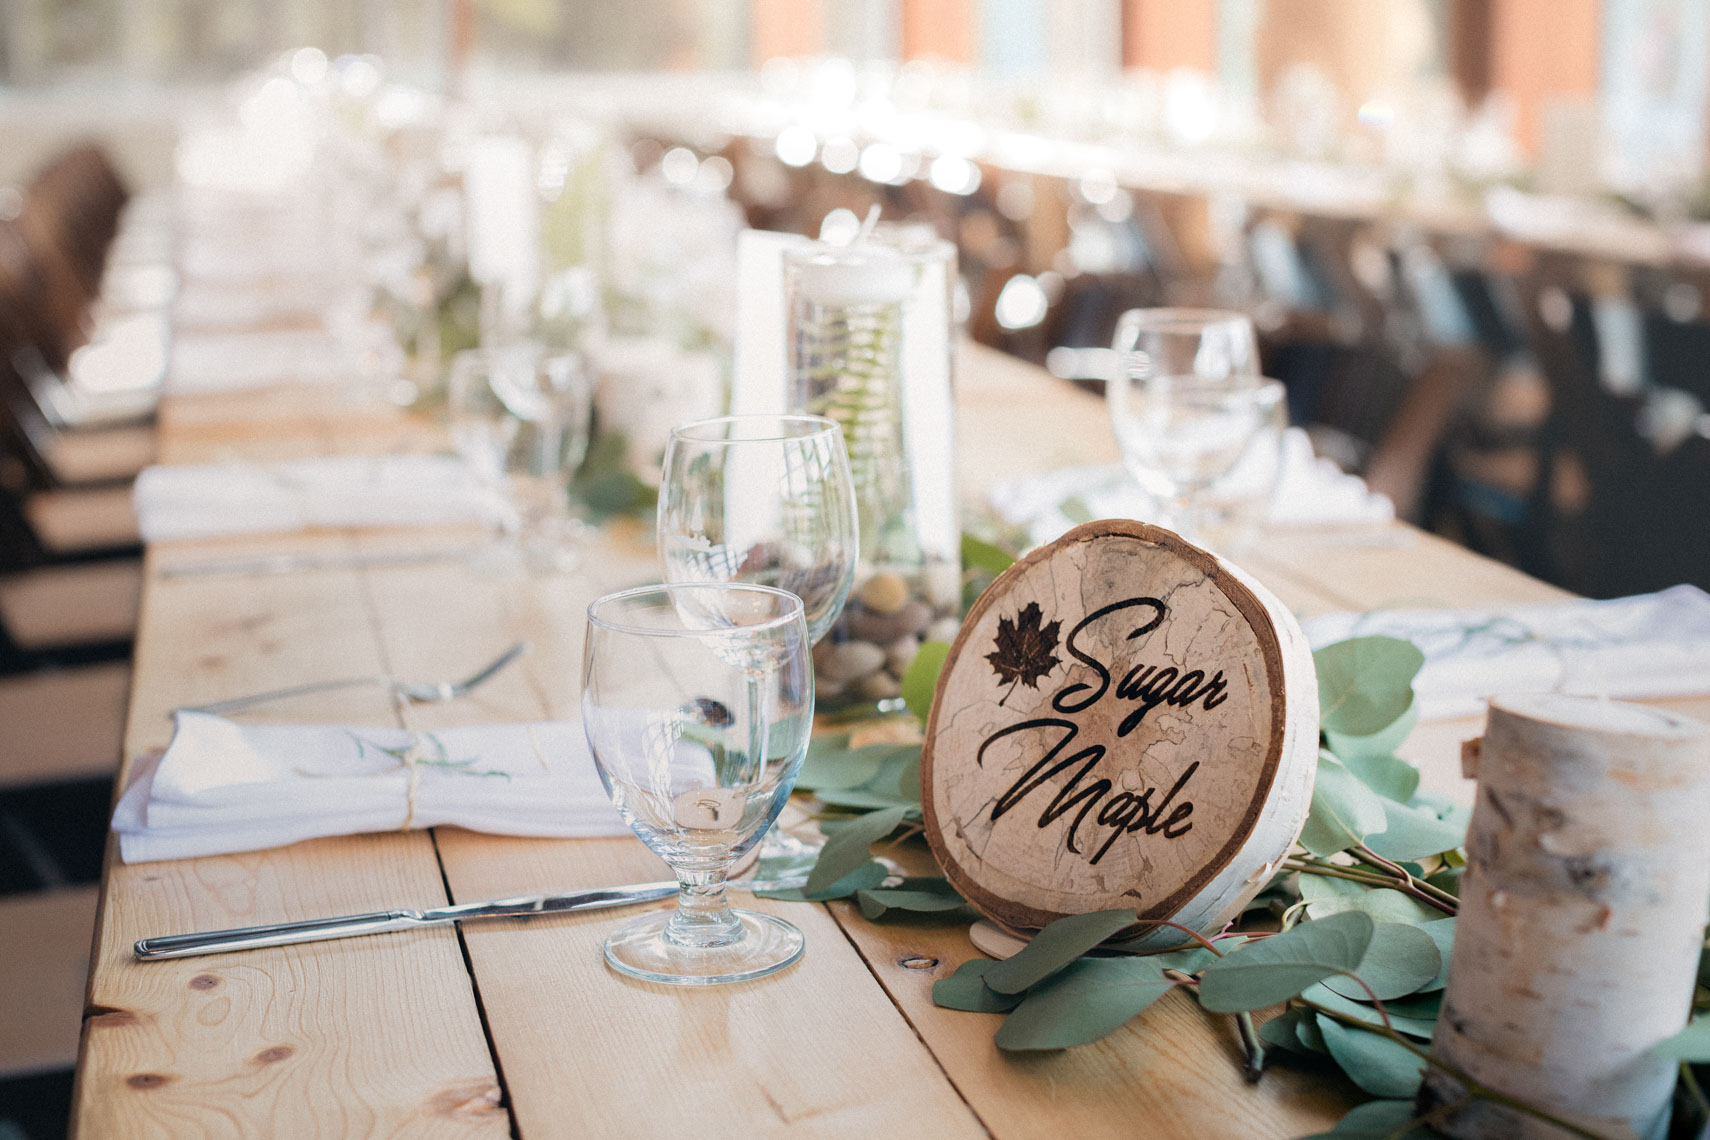 Wedding table decor photography showing natural wood sign